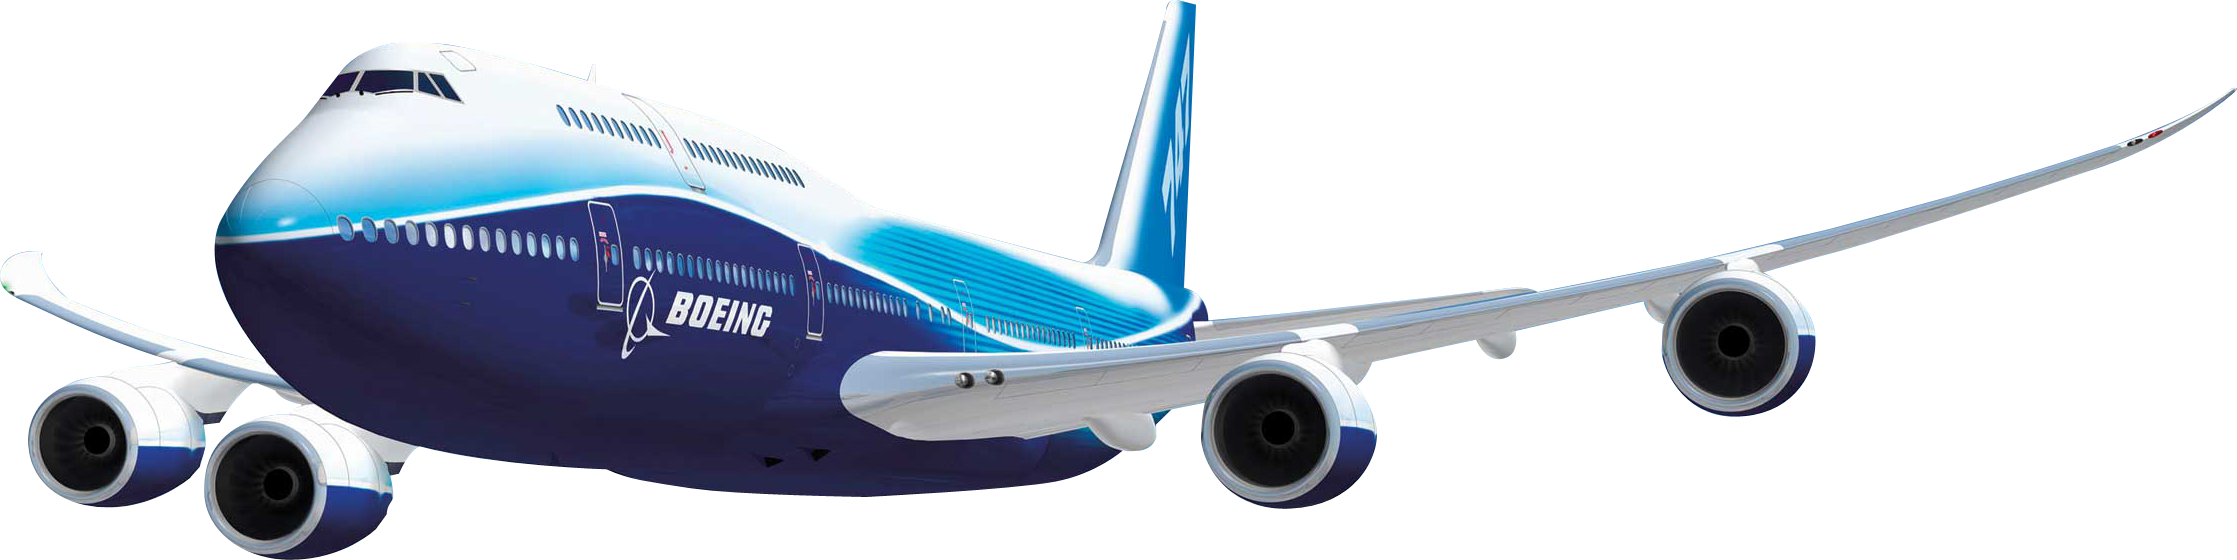 Engine clipart airplane. Planes png images free